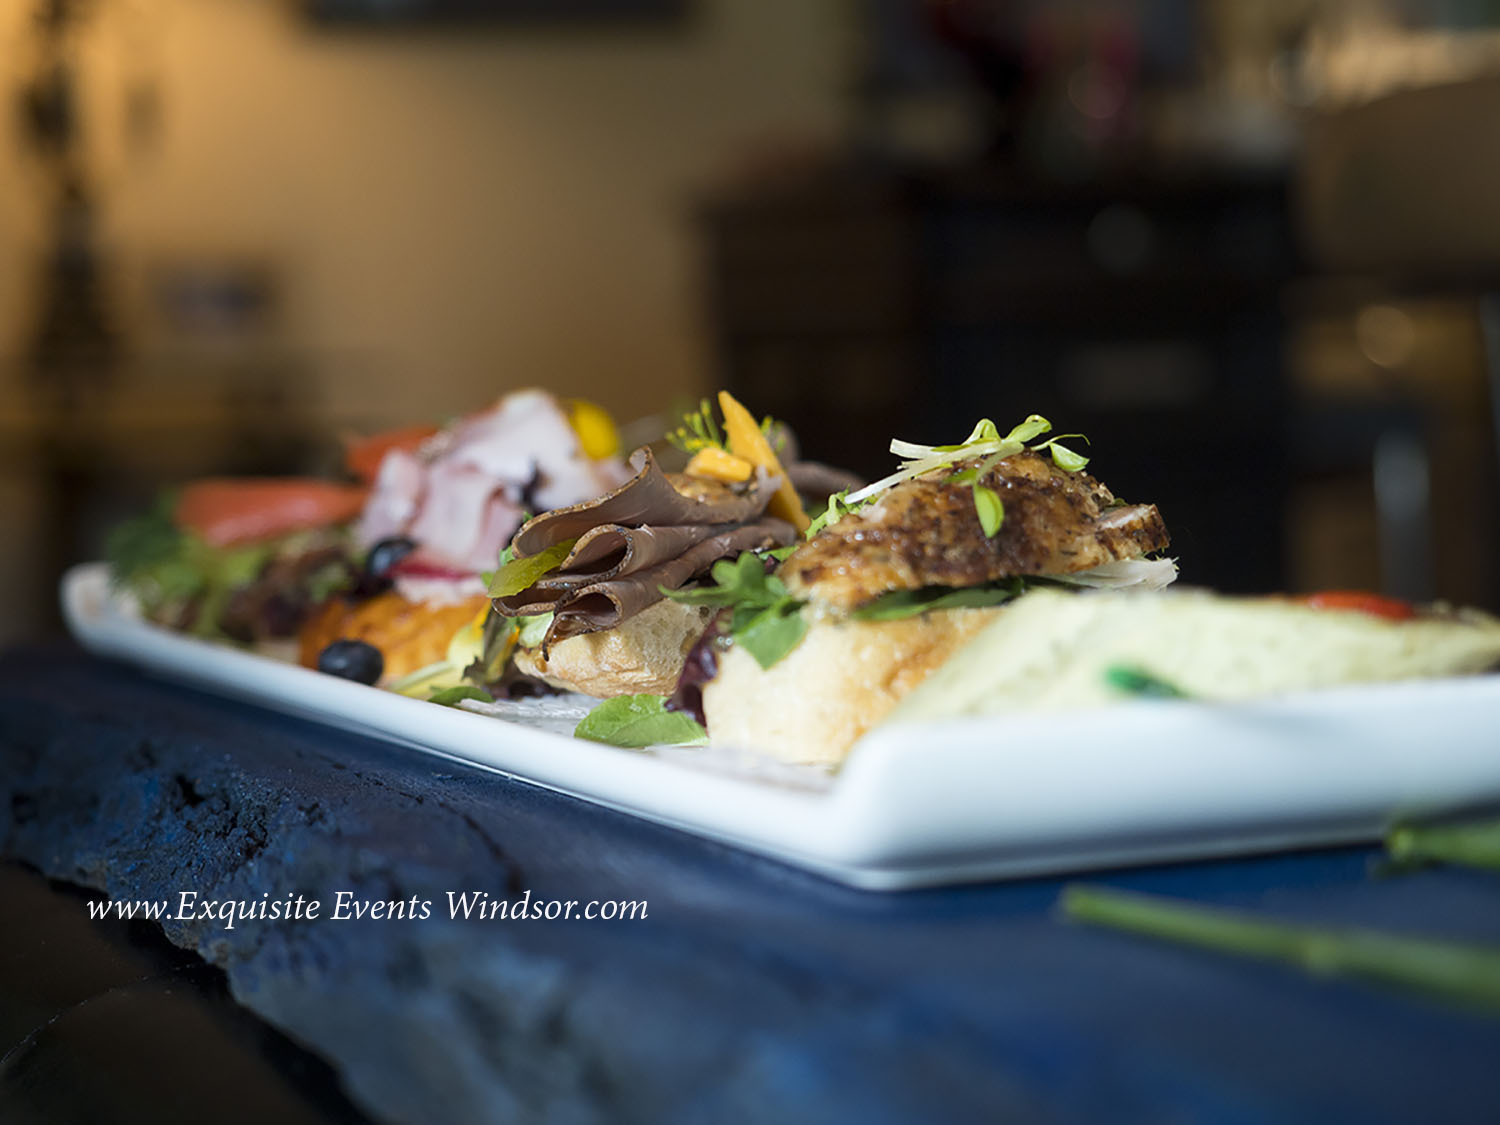 Exquisite Events Windsor Blueboard Open Face Sandwiches.jpg